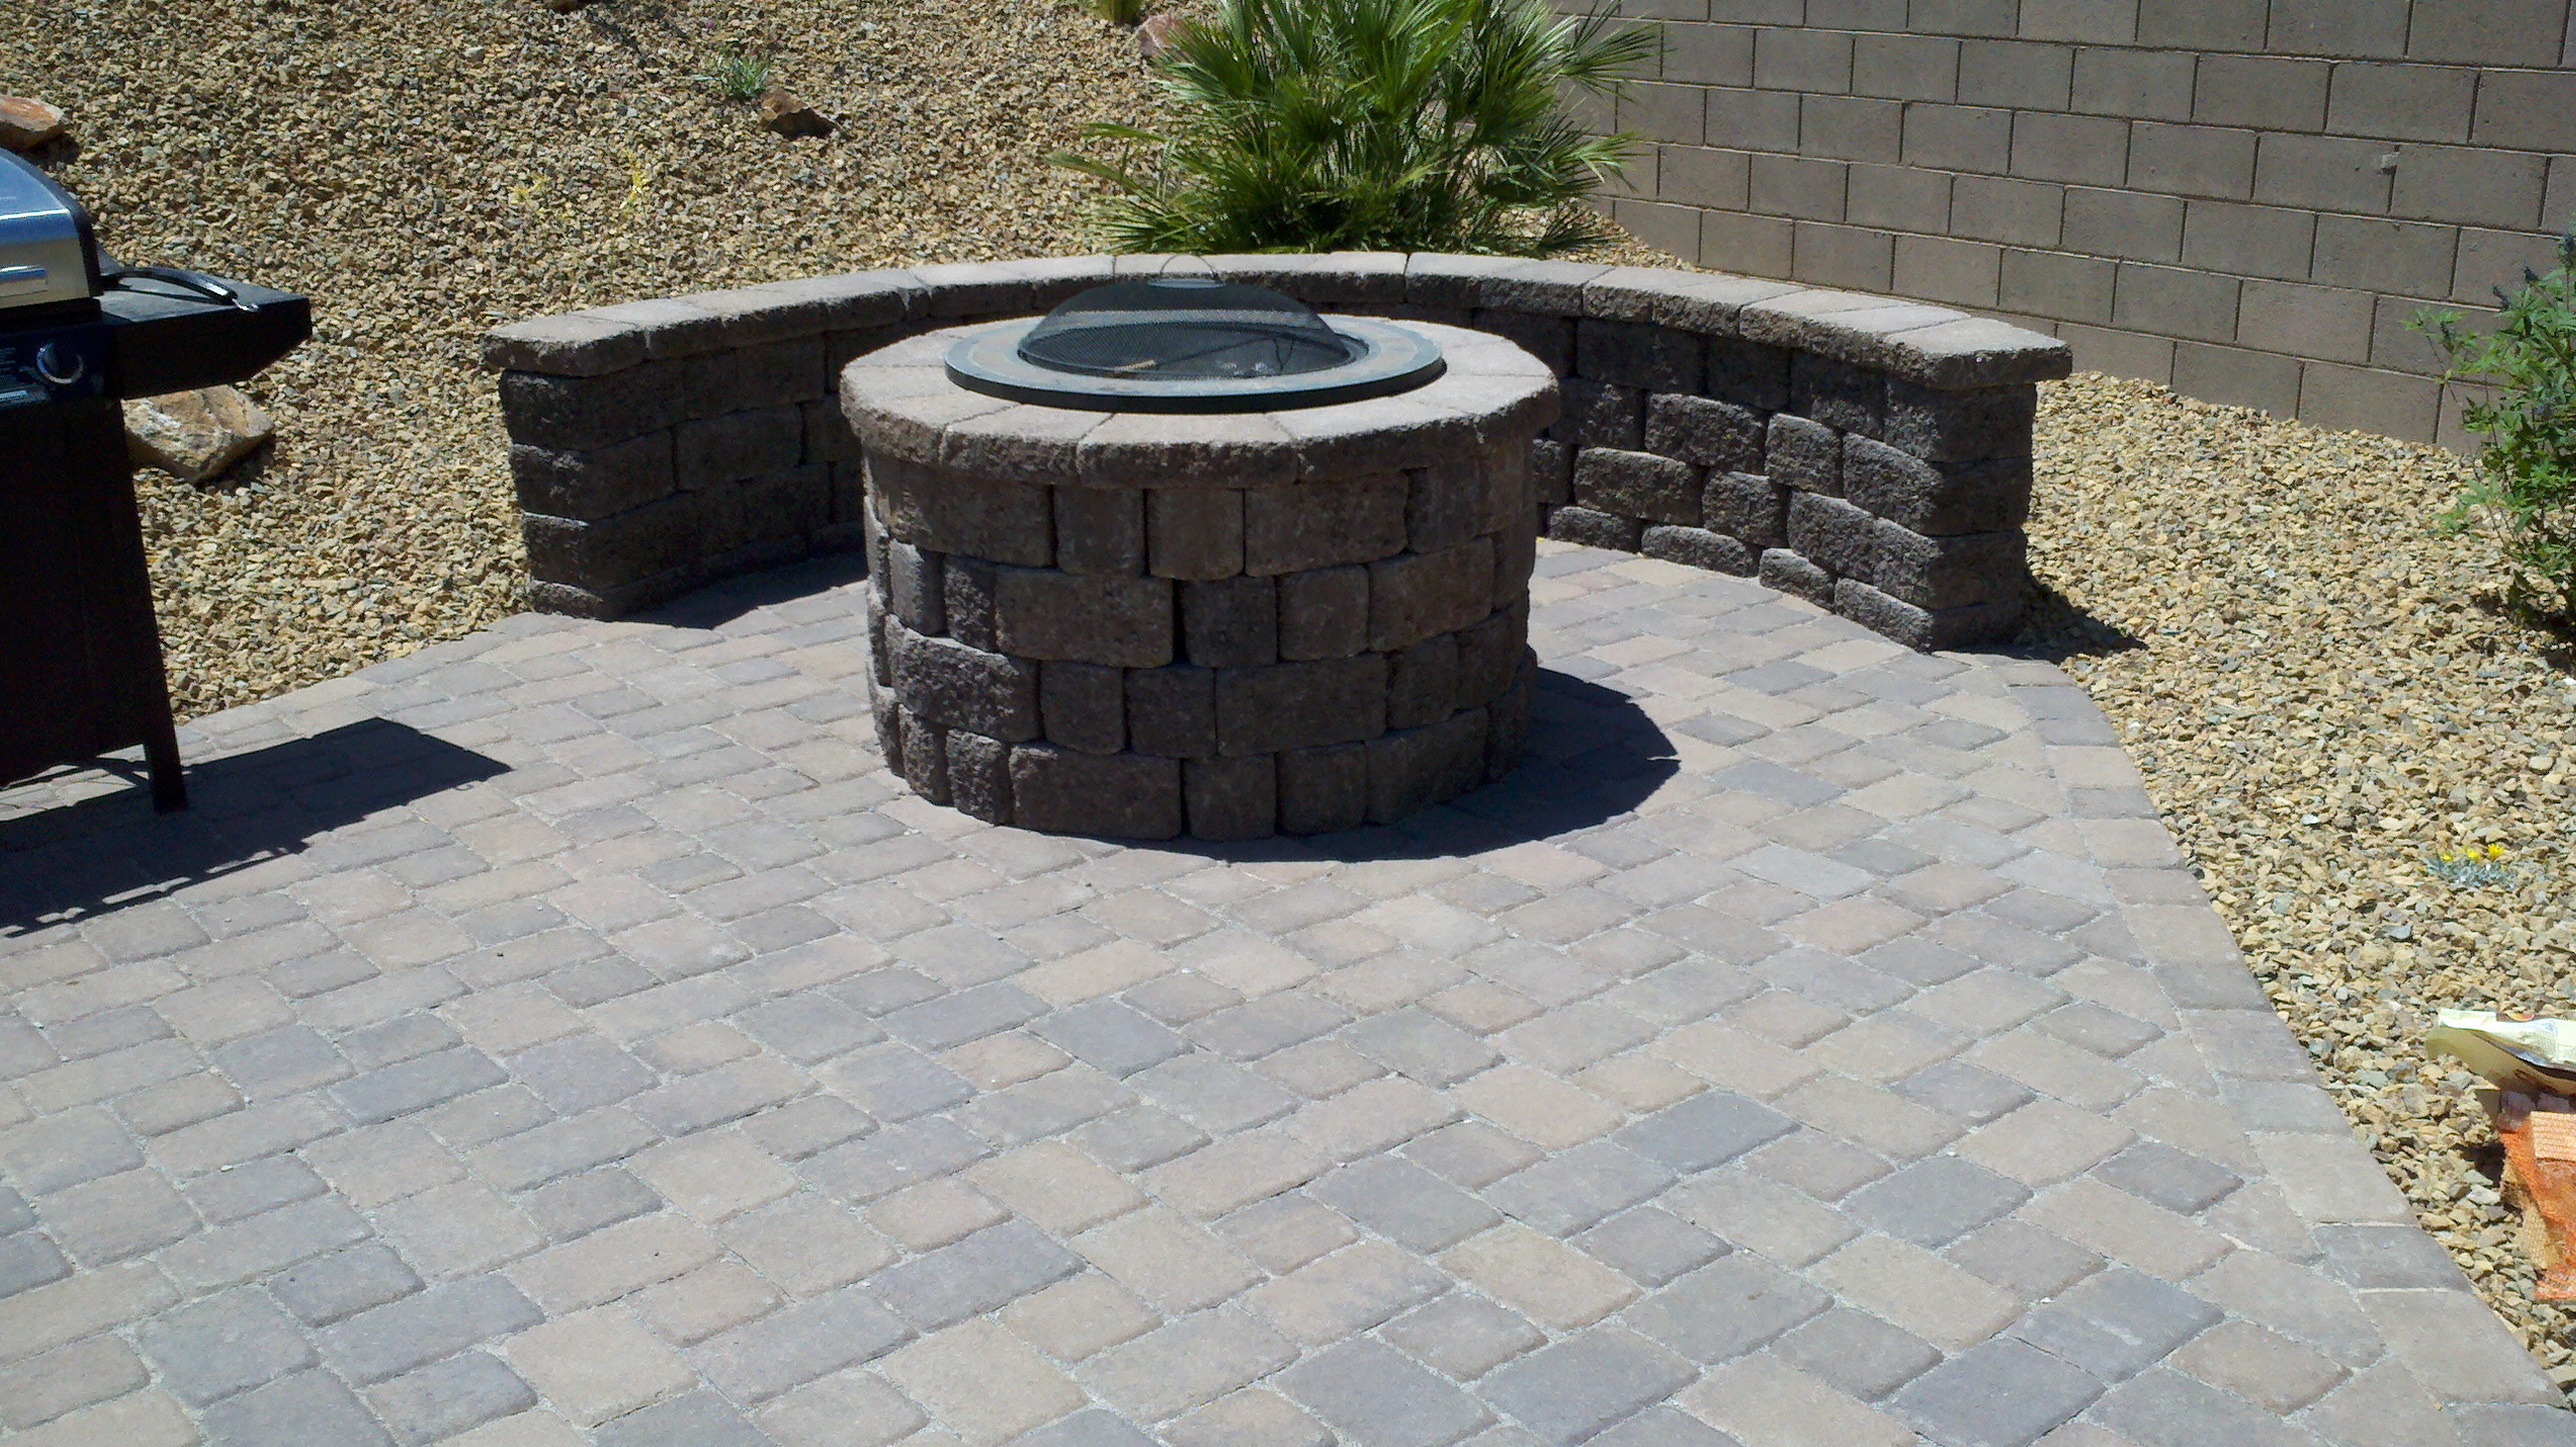 2018 Pavers Gallery - Get Design Ideas, View Paver Pictures Paver fire pit pictures